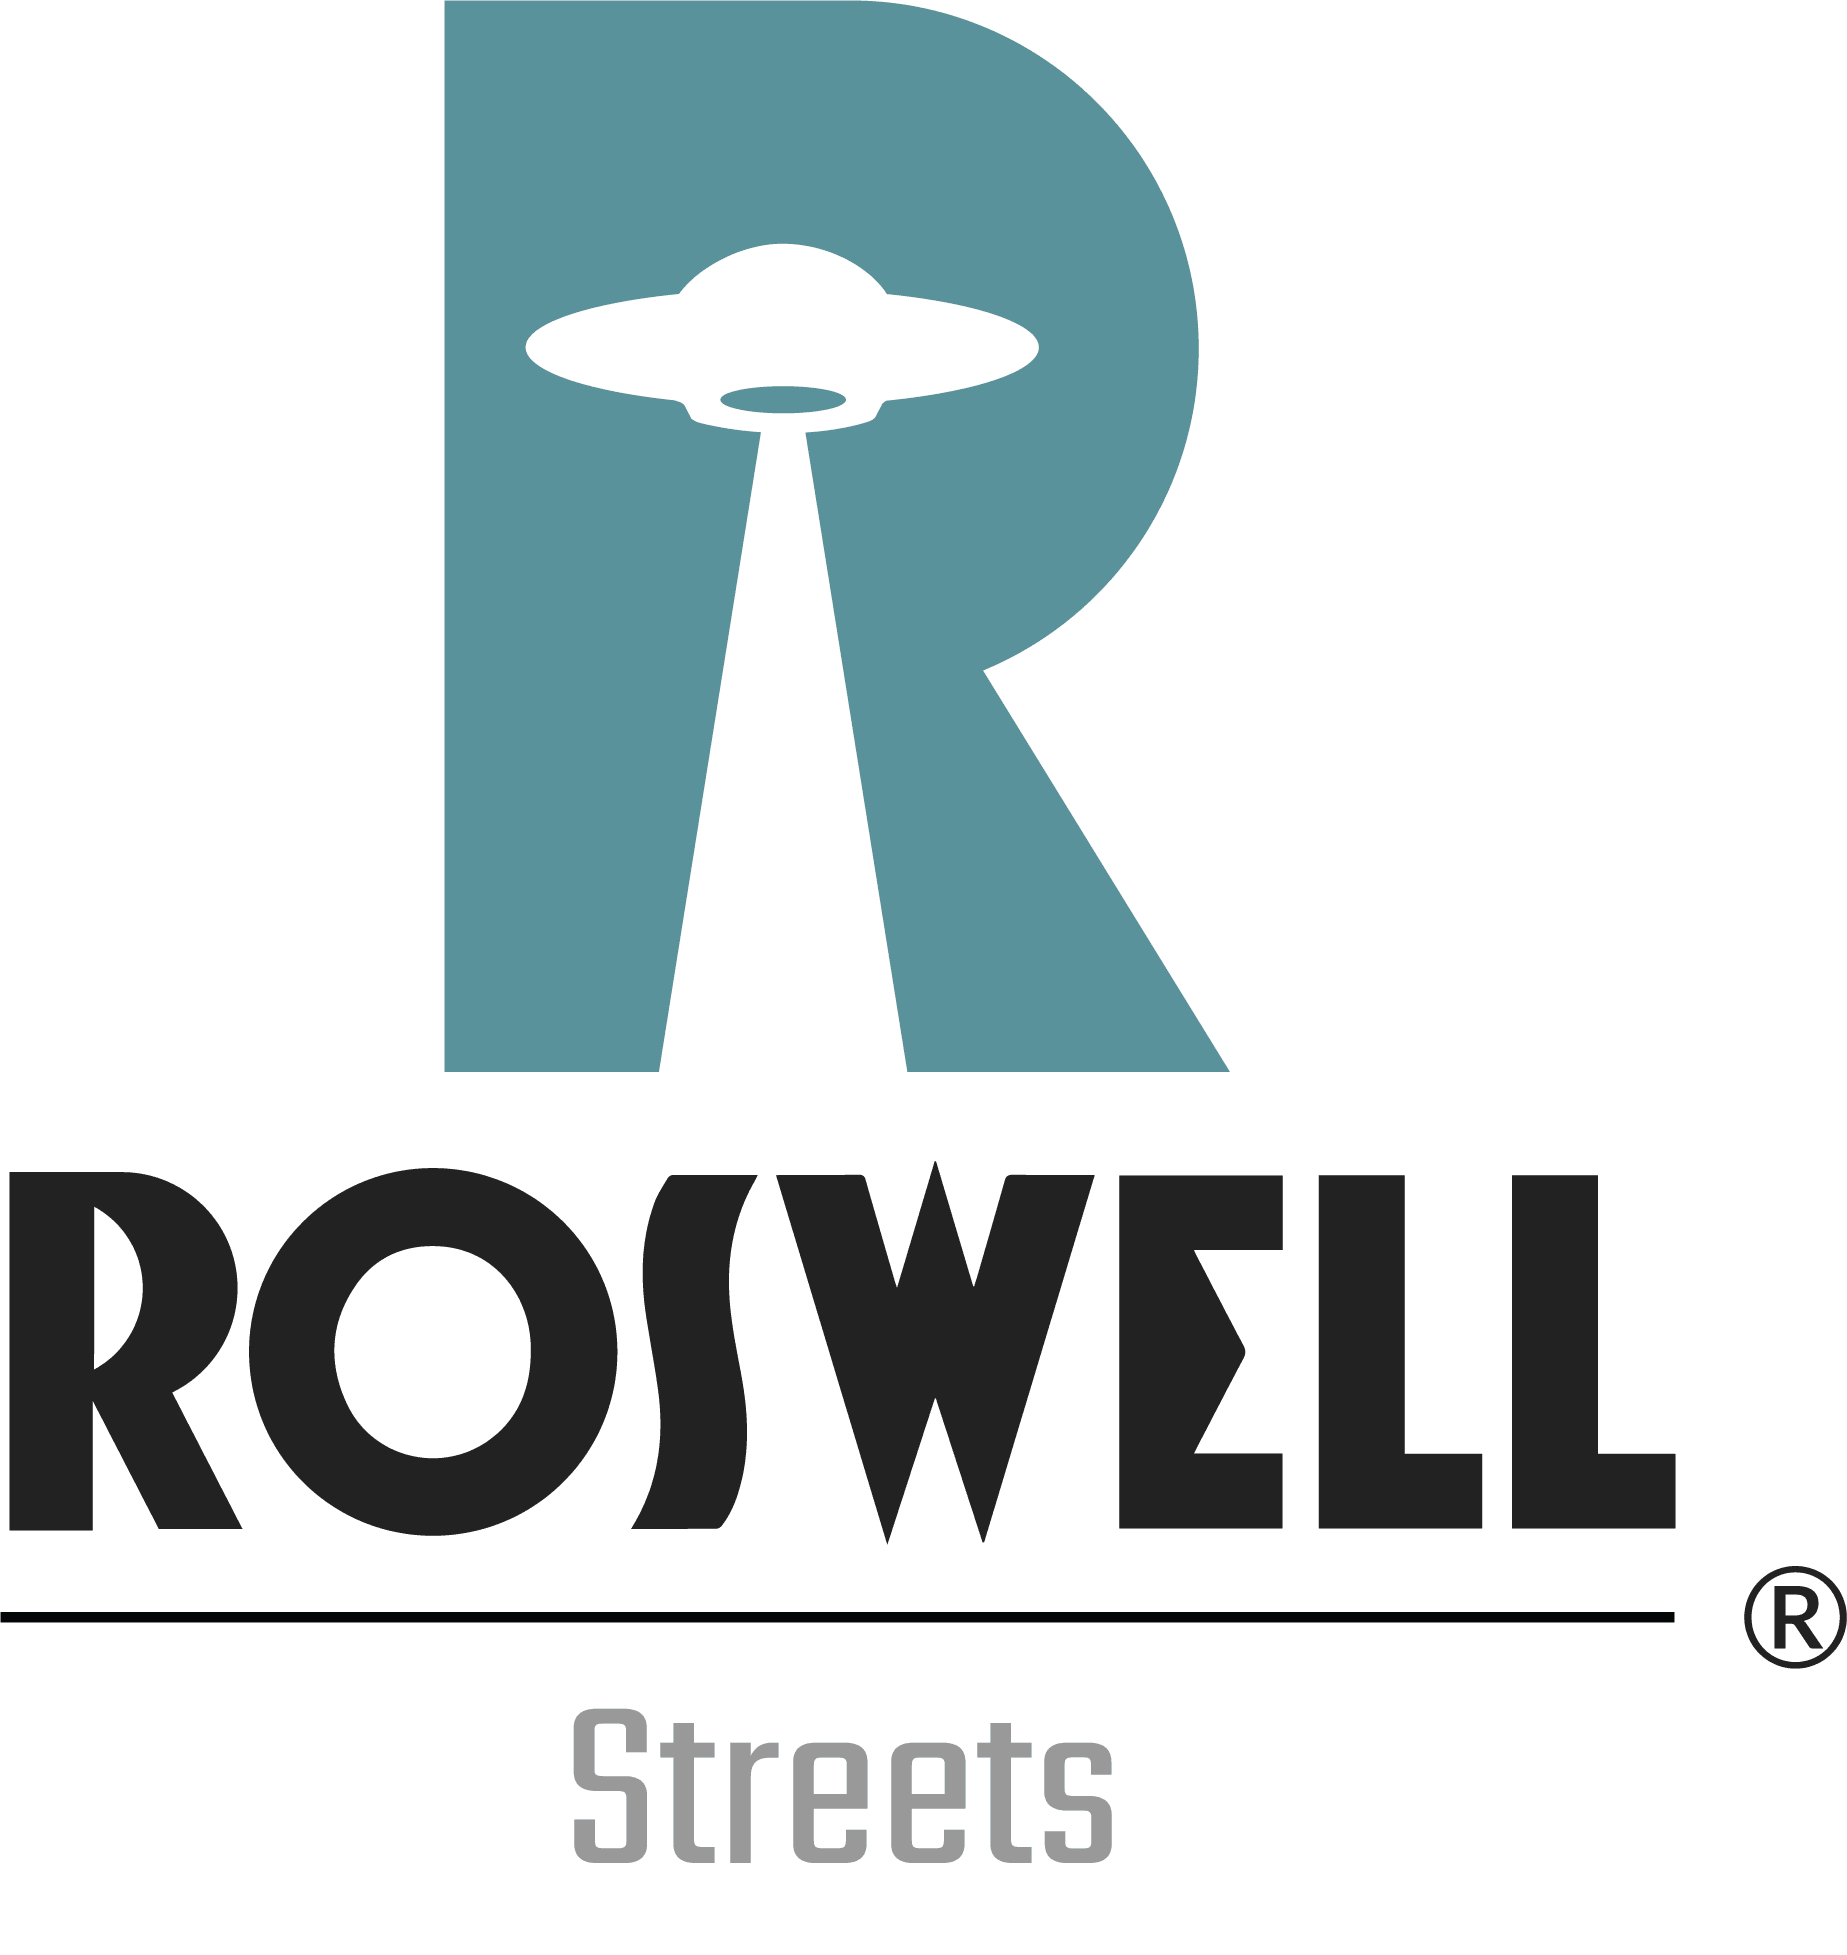 Logo for City of Roswell Streets Department